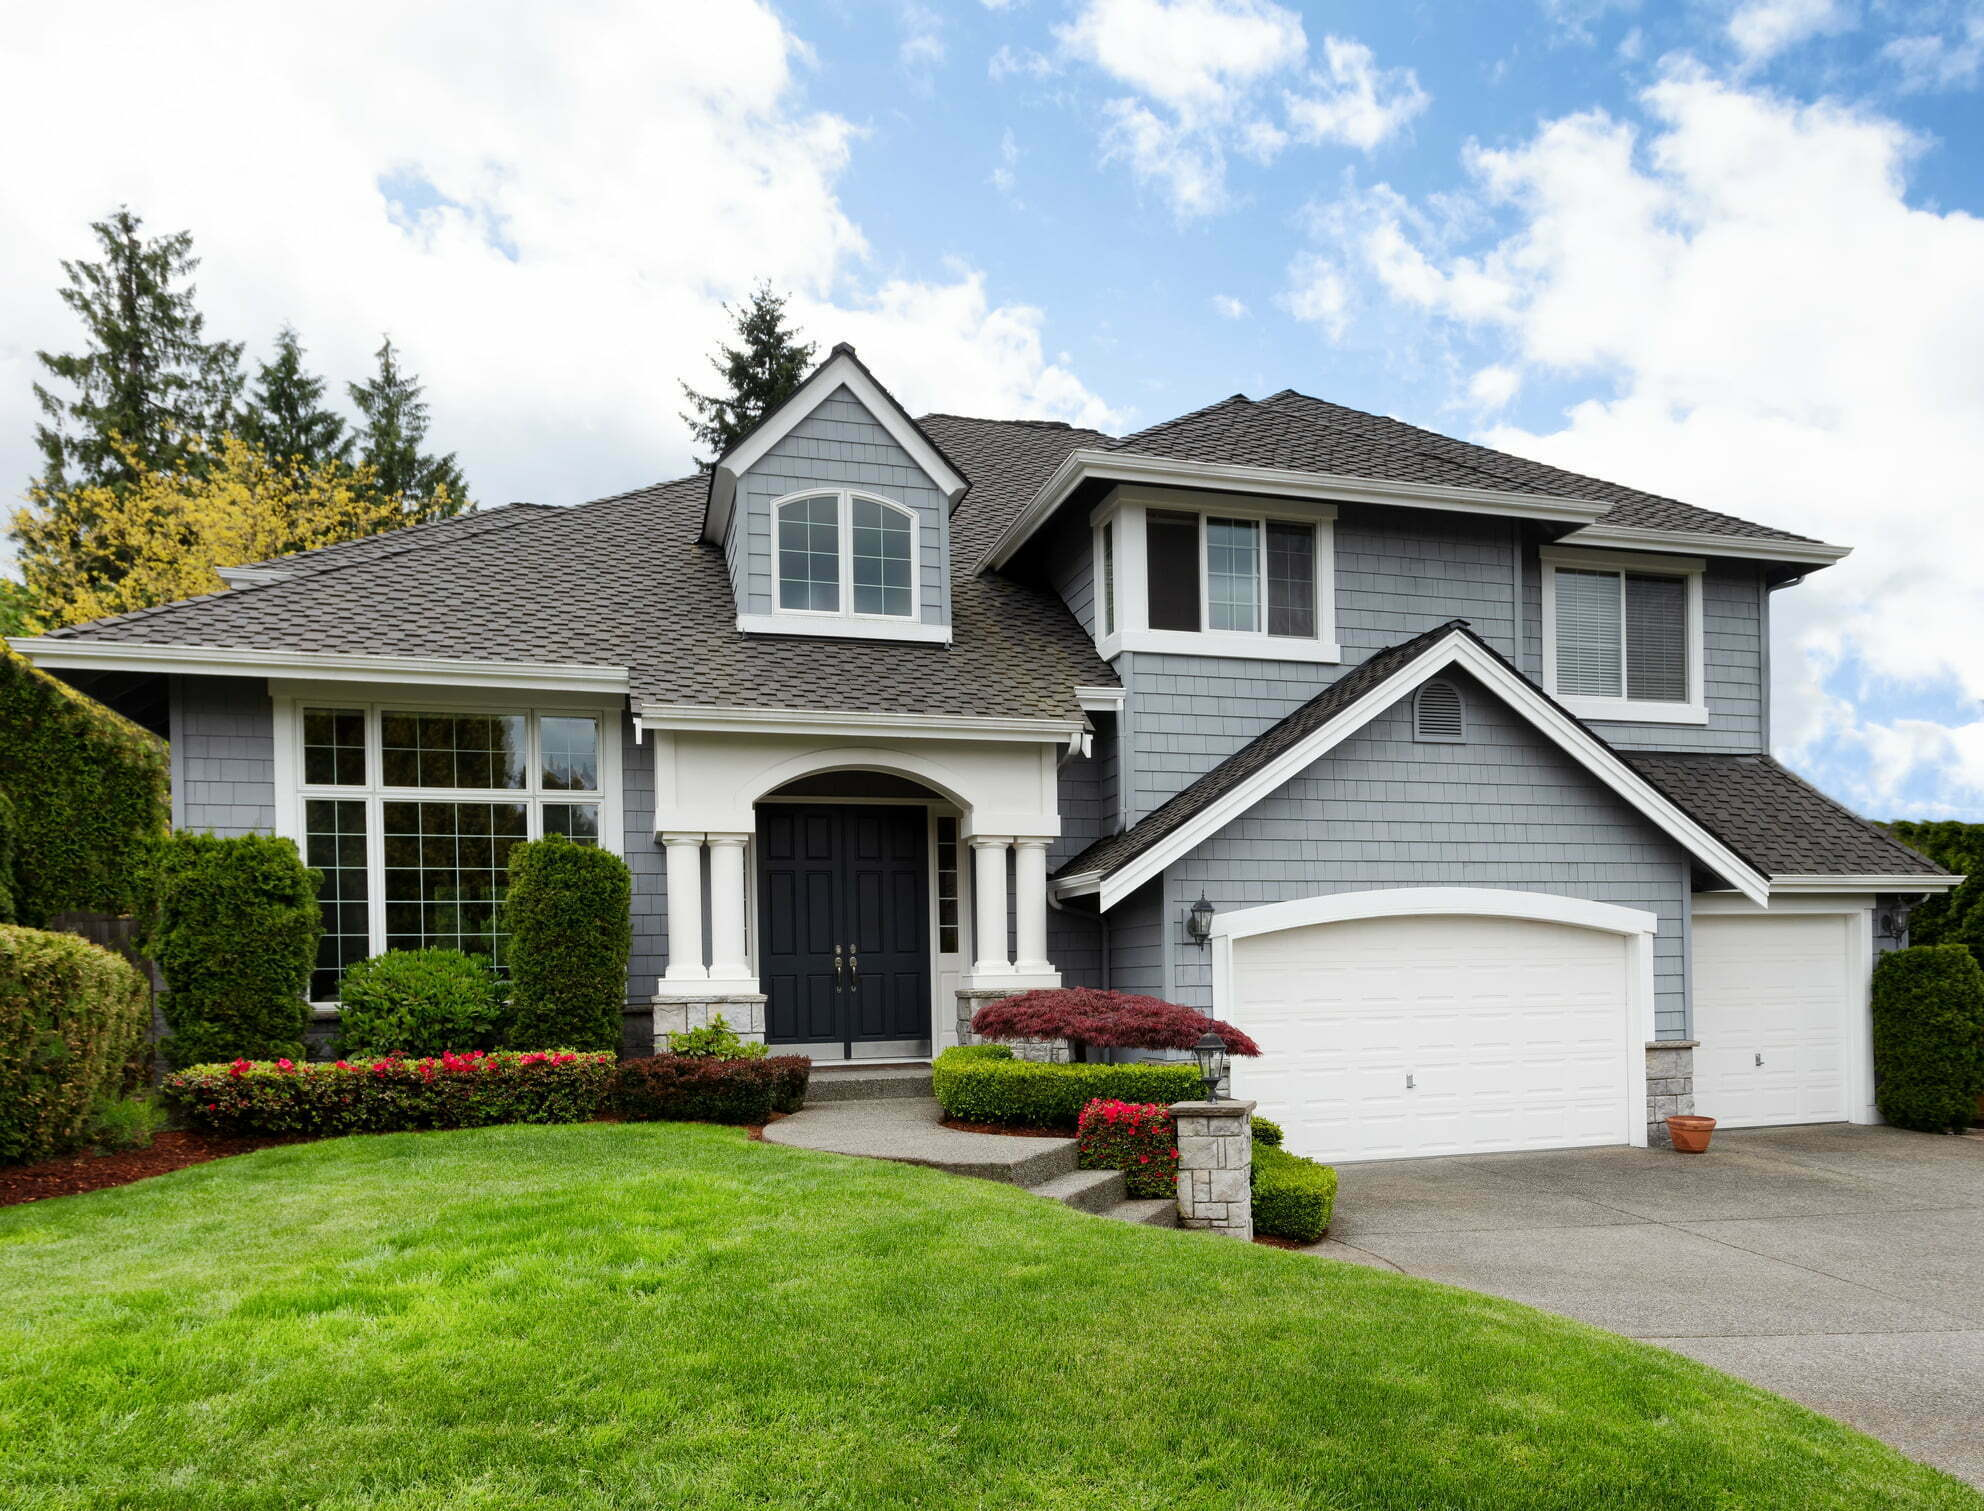 Prepare Your Home for Selling in the Spring